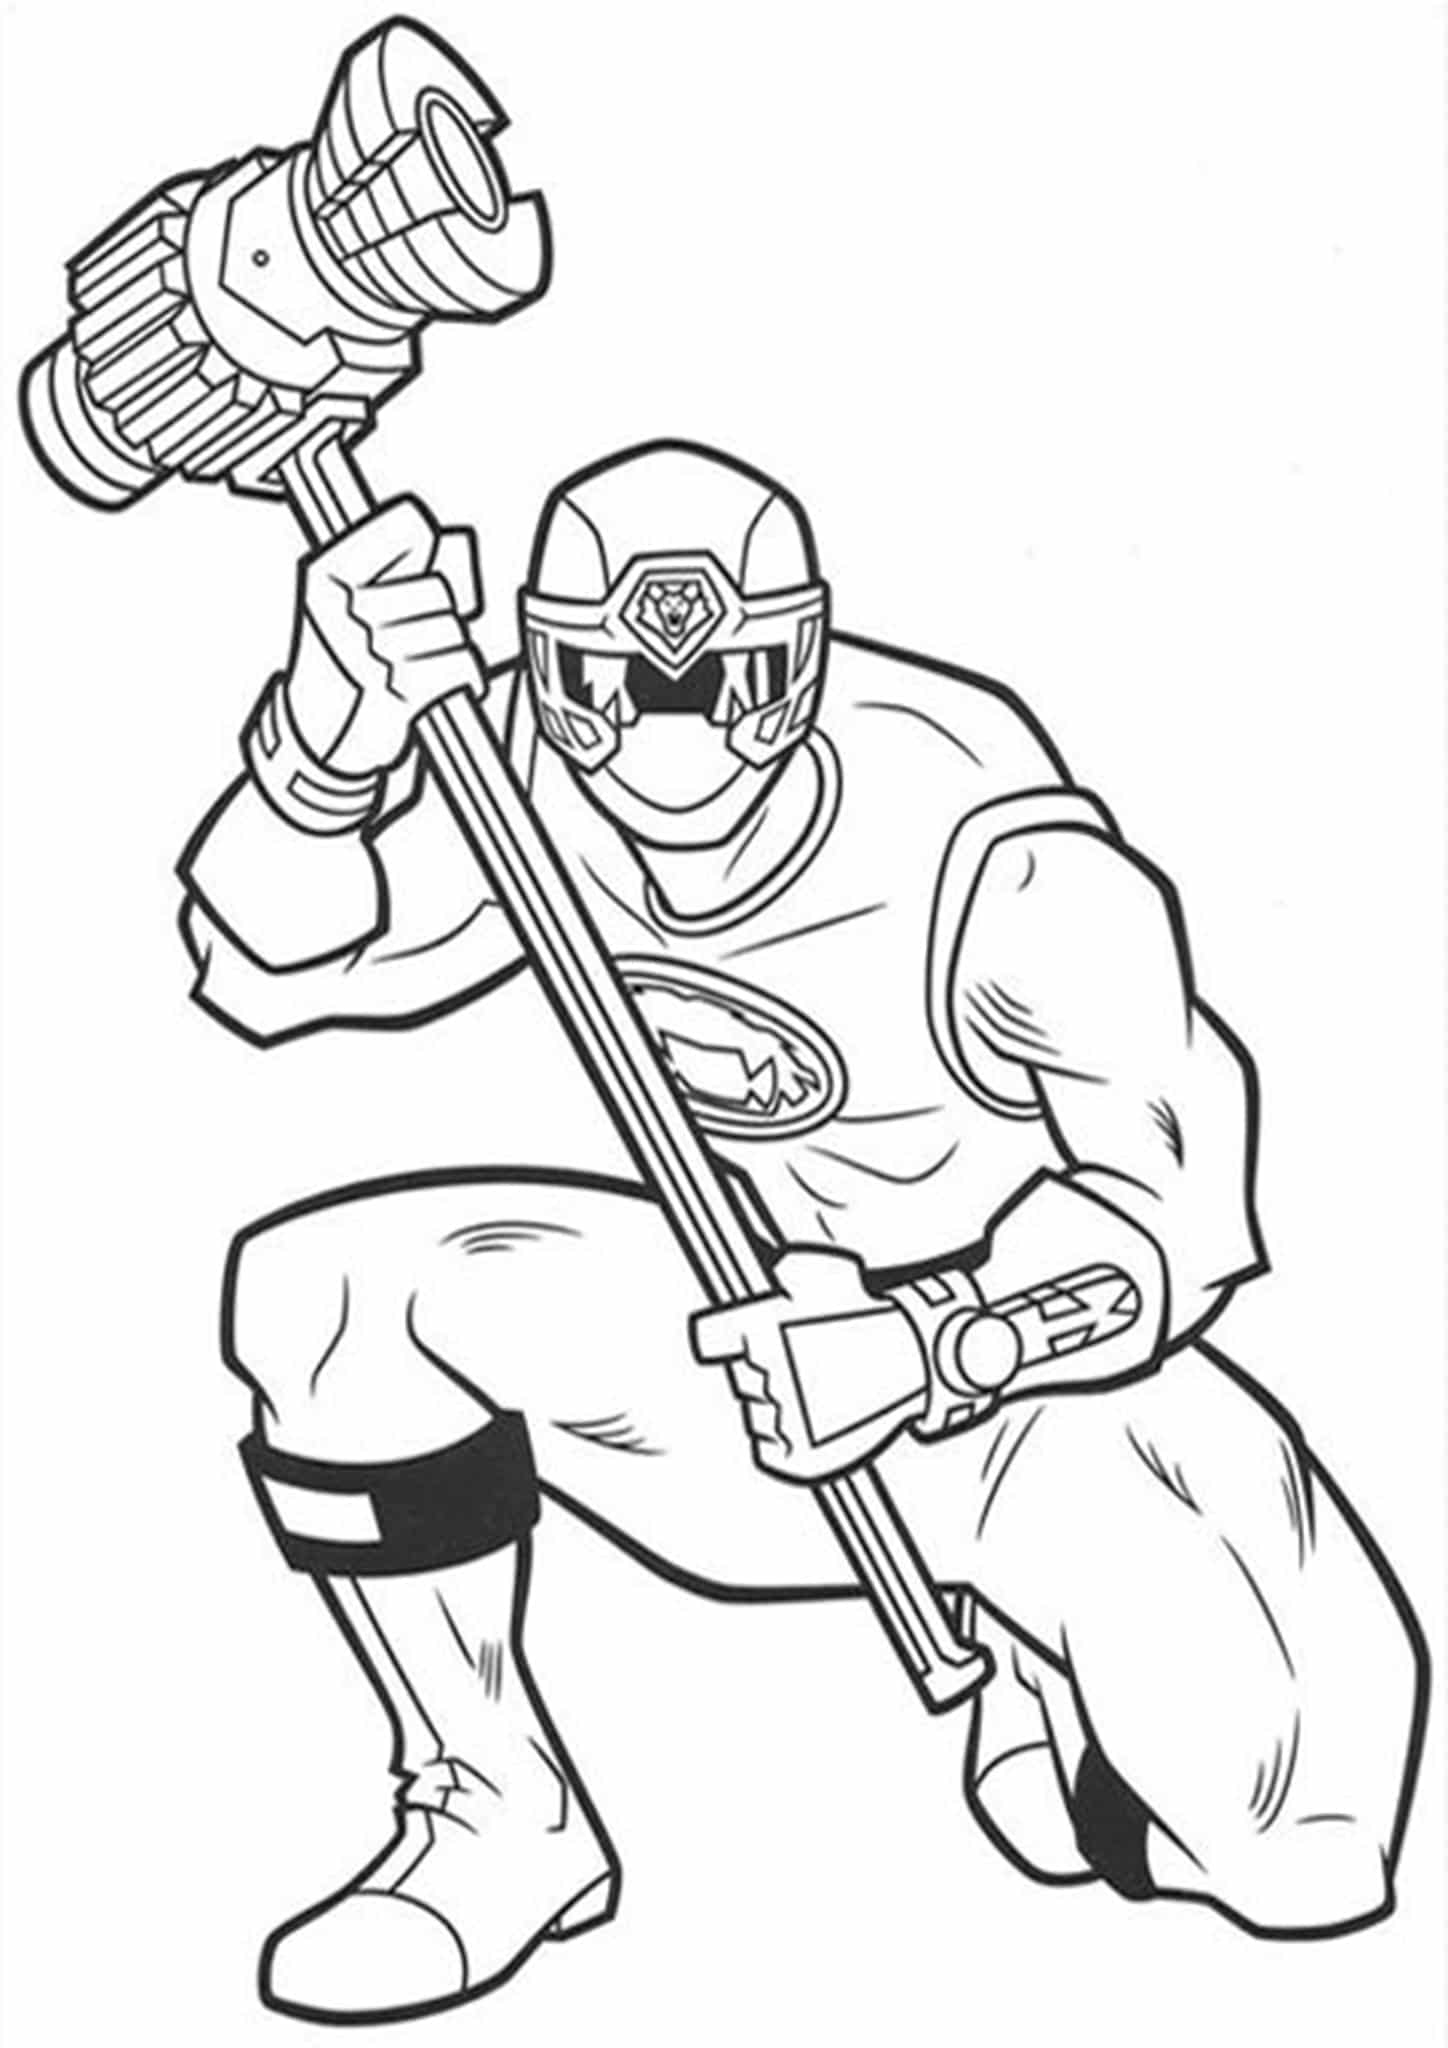 Power ranger coloring pages free